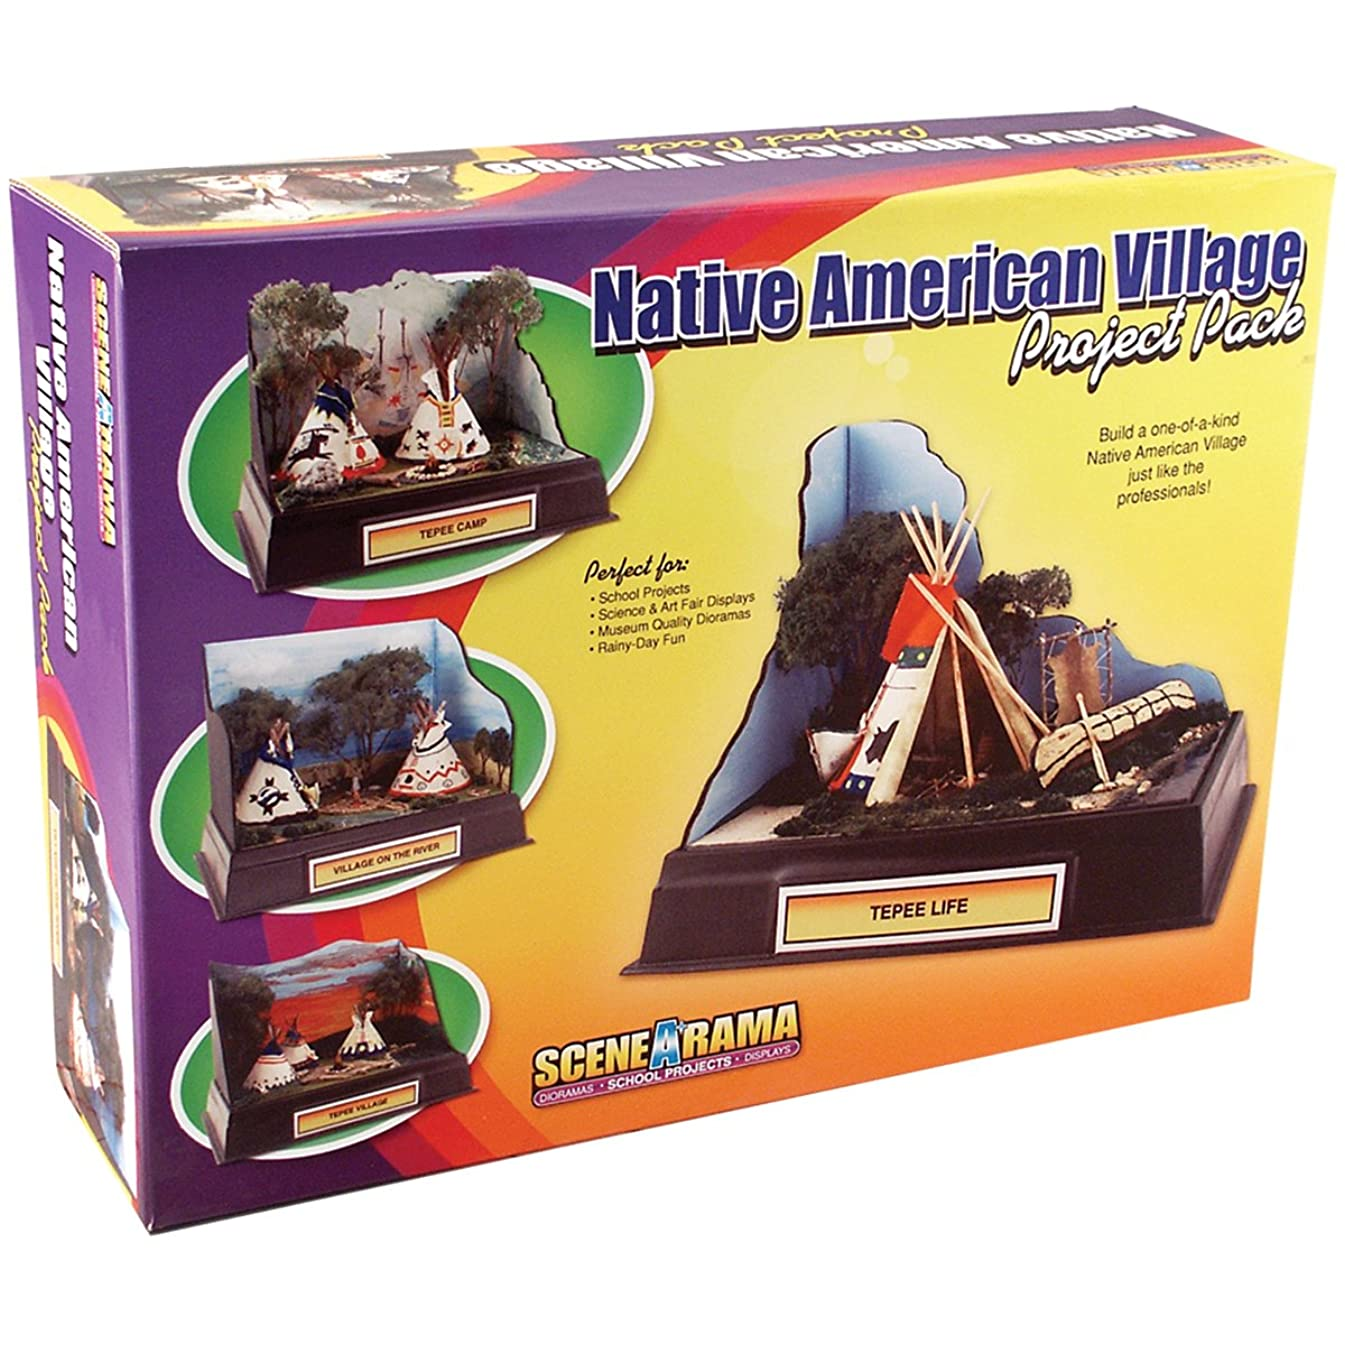 Woodland Scenics Project Pack, Native American Village